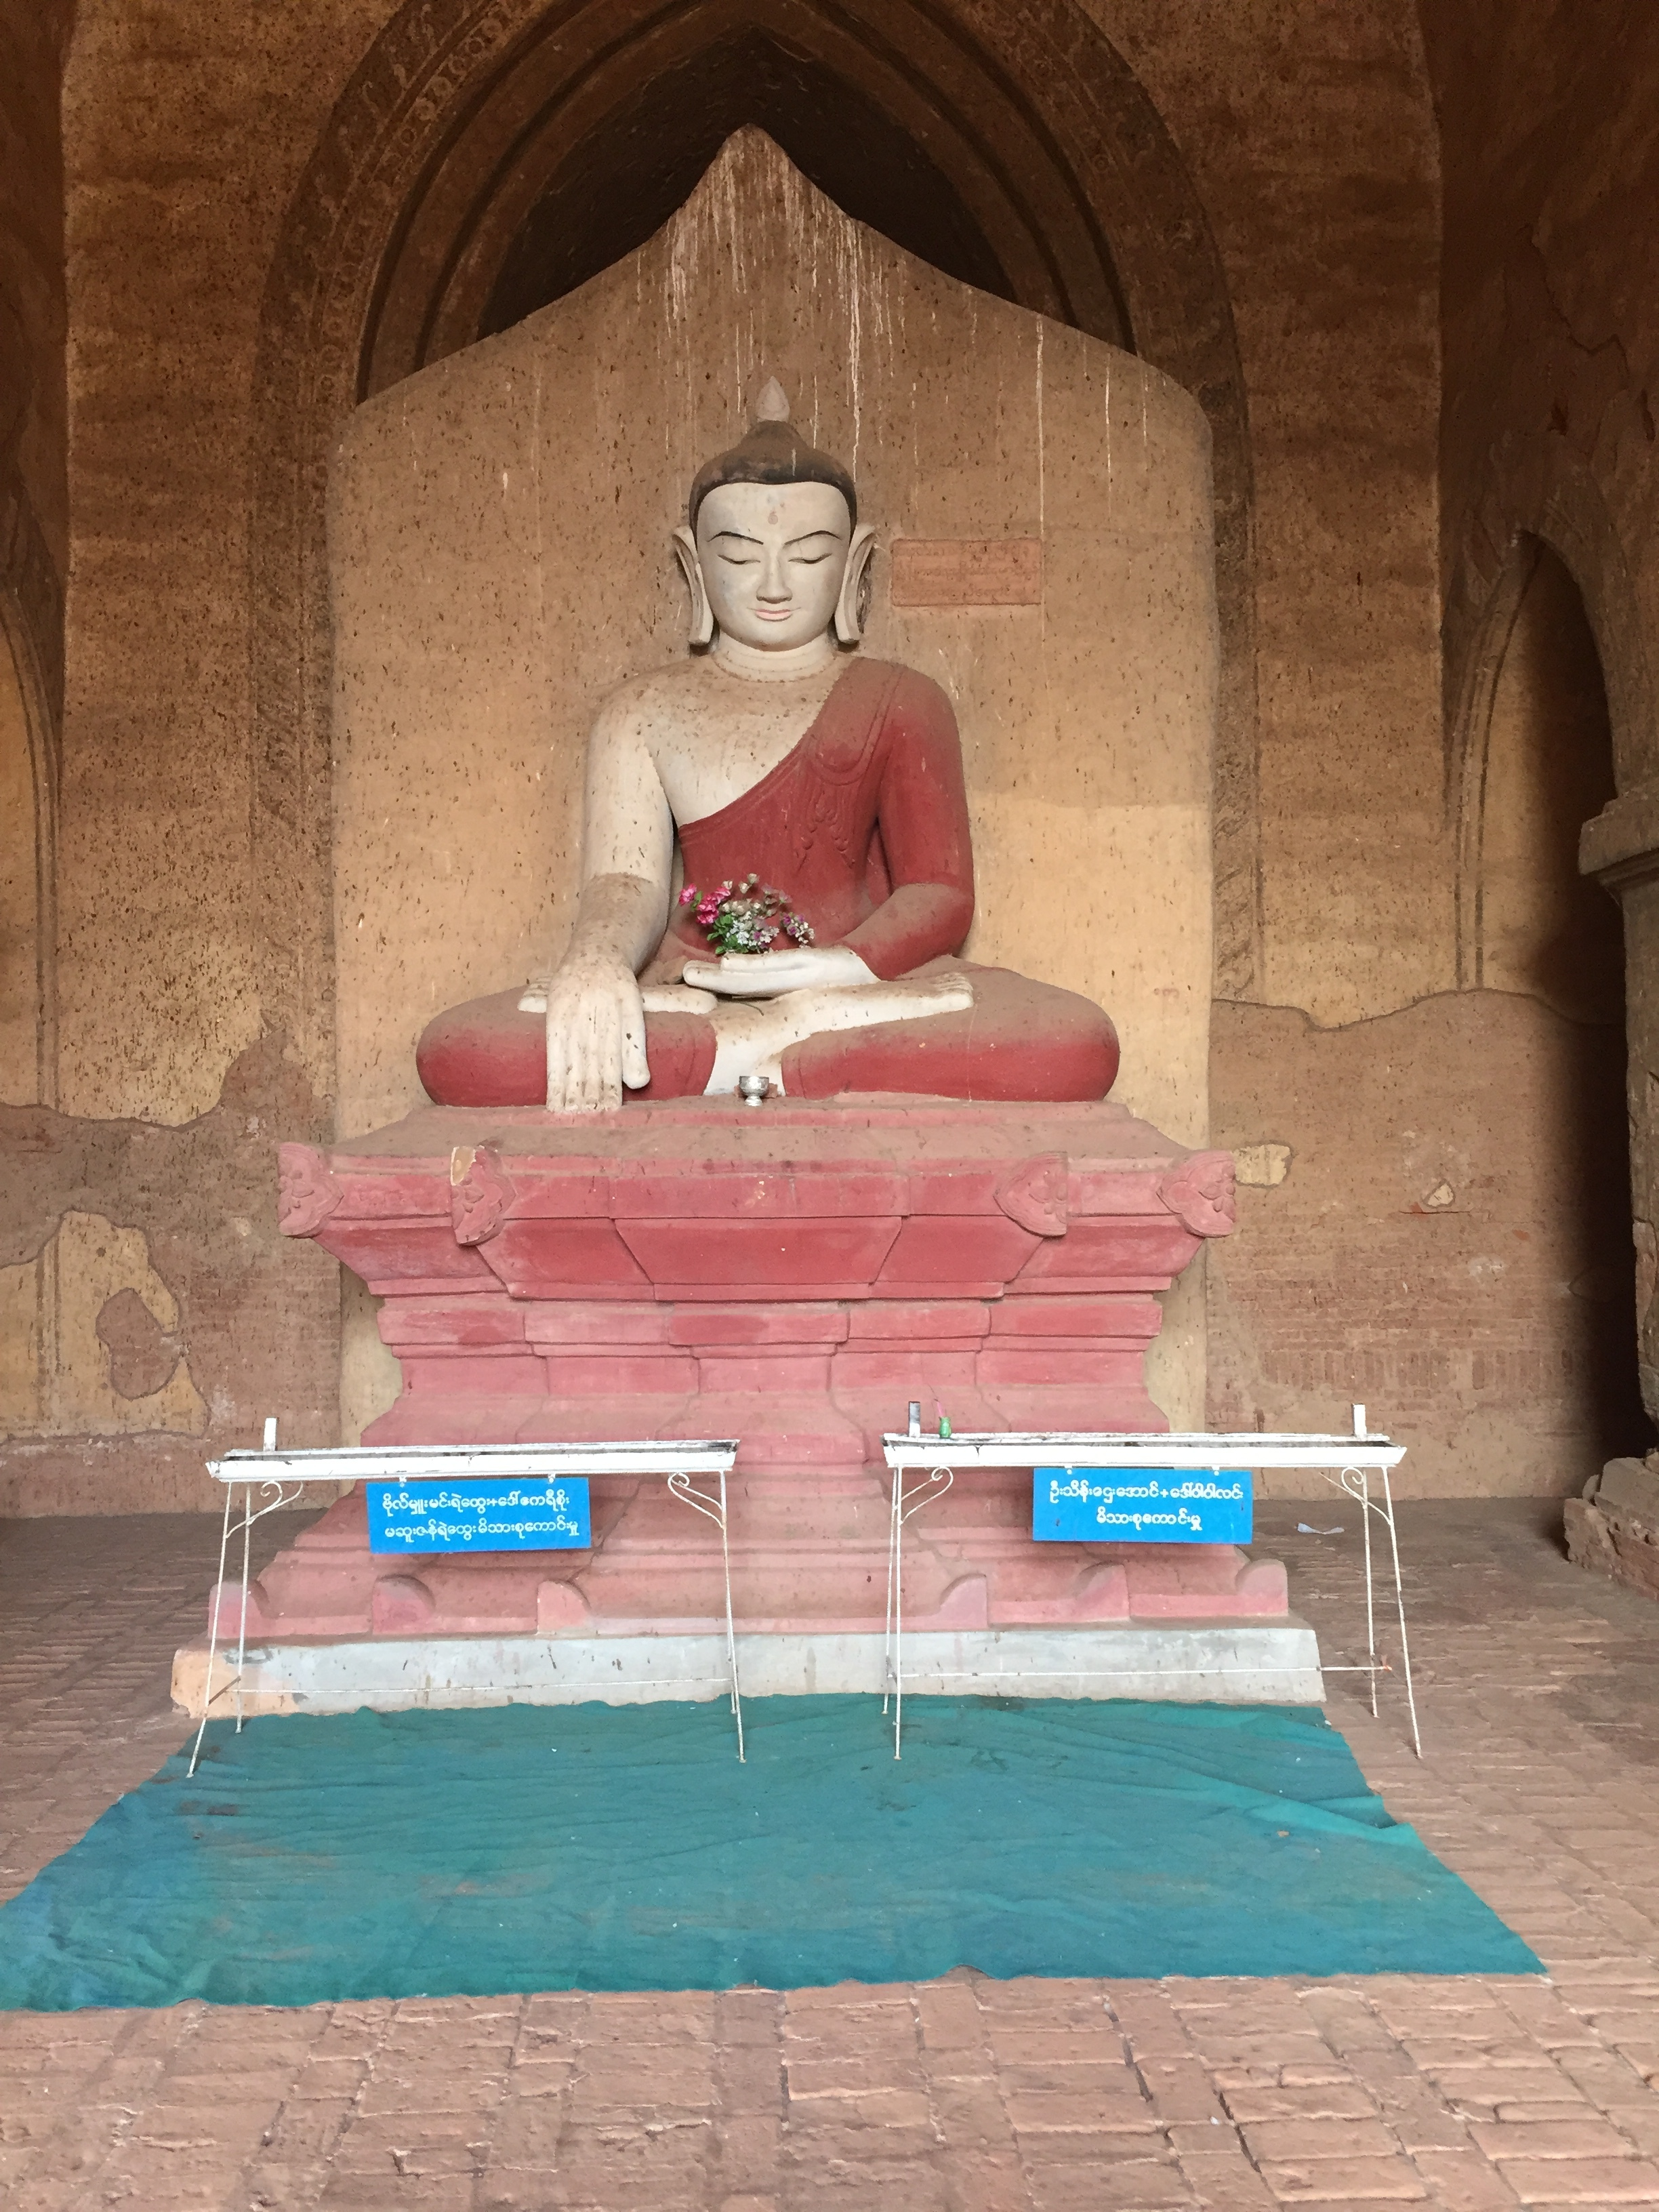 One of the only non-gold Buddhas we saw.